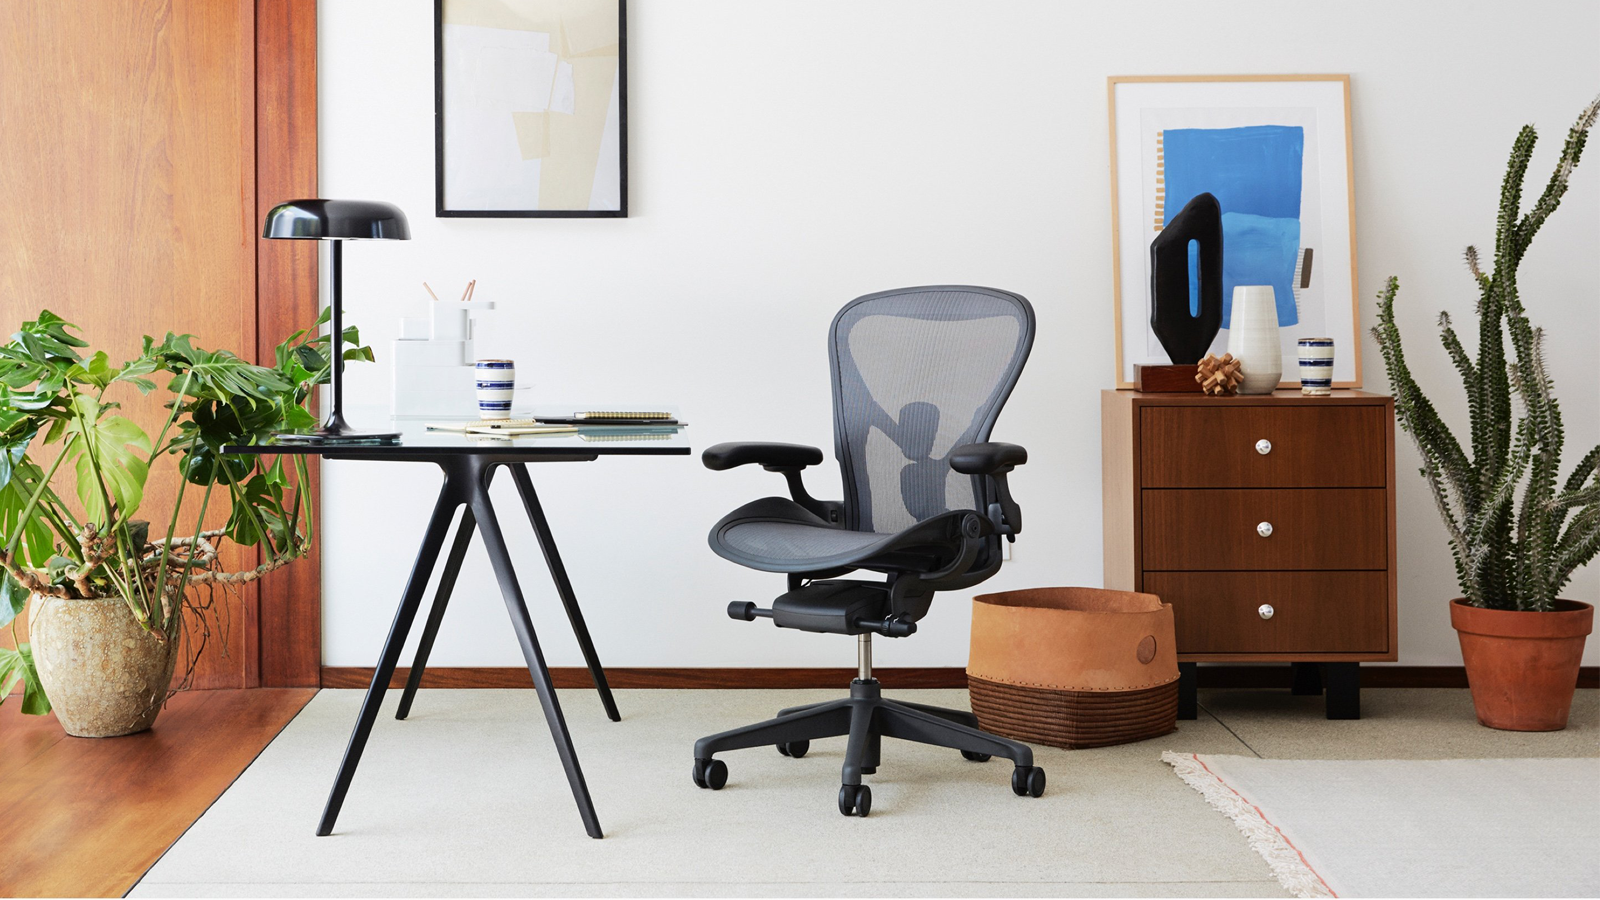 Herman Miller Aeron in light office with plants and modern furniture